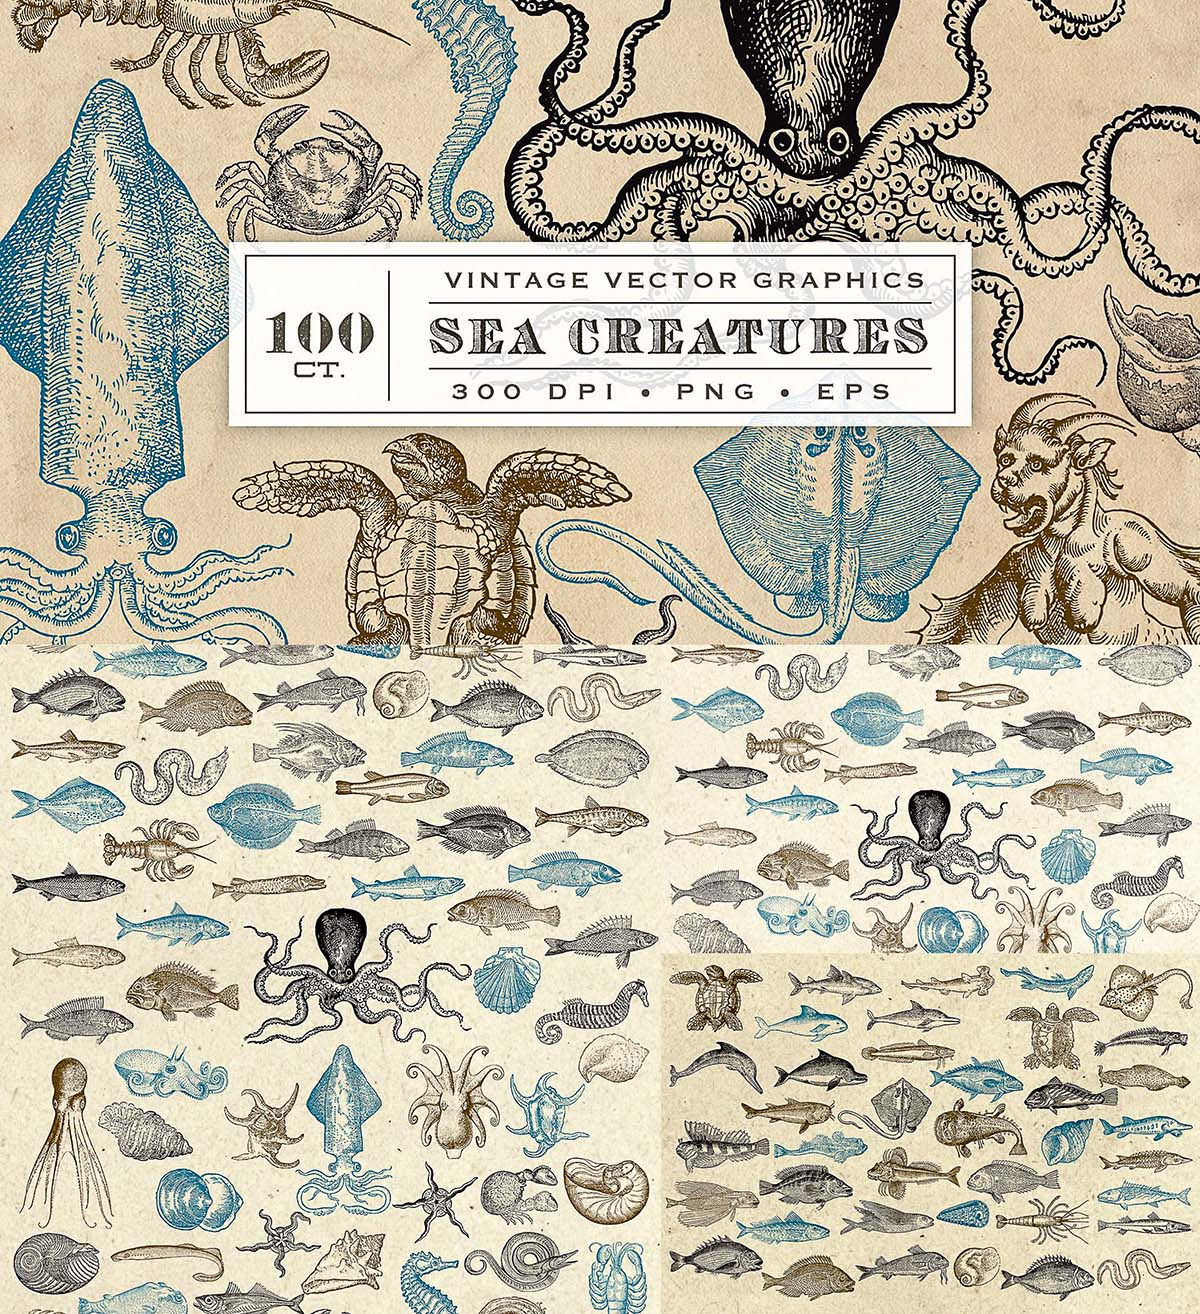 Antique sea creatures illustrations